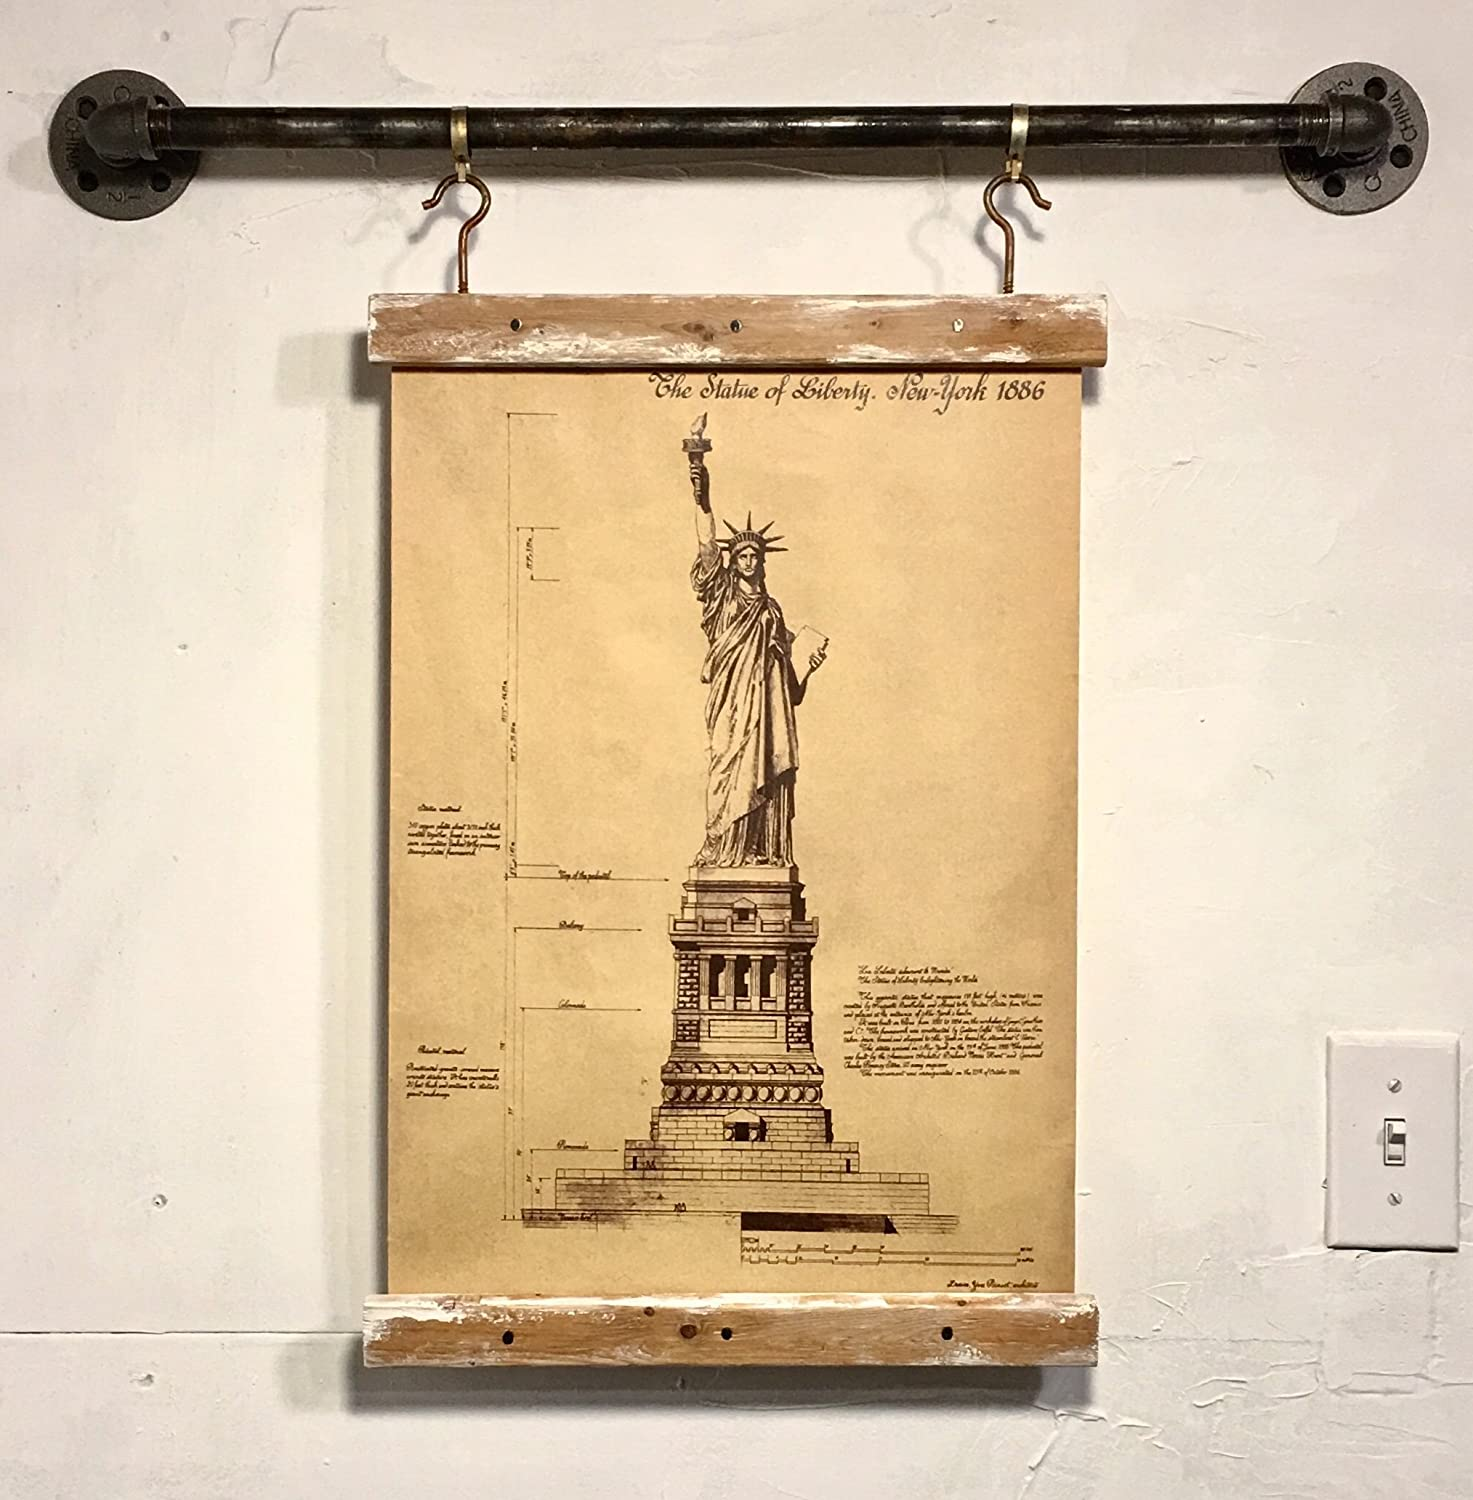 Amazon wood signs industrial pipe rustic wall decor statue of amazon wood signs industrial pipe rustic wall decor statue of liberty blueprint art print wall hanging handmade malvernweather Images